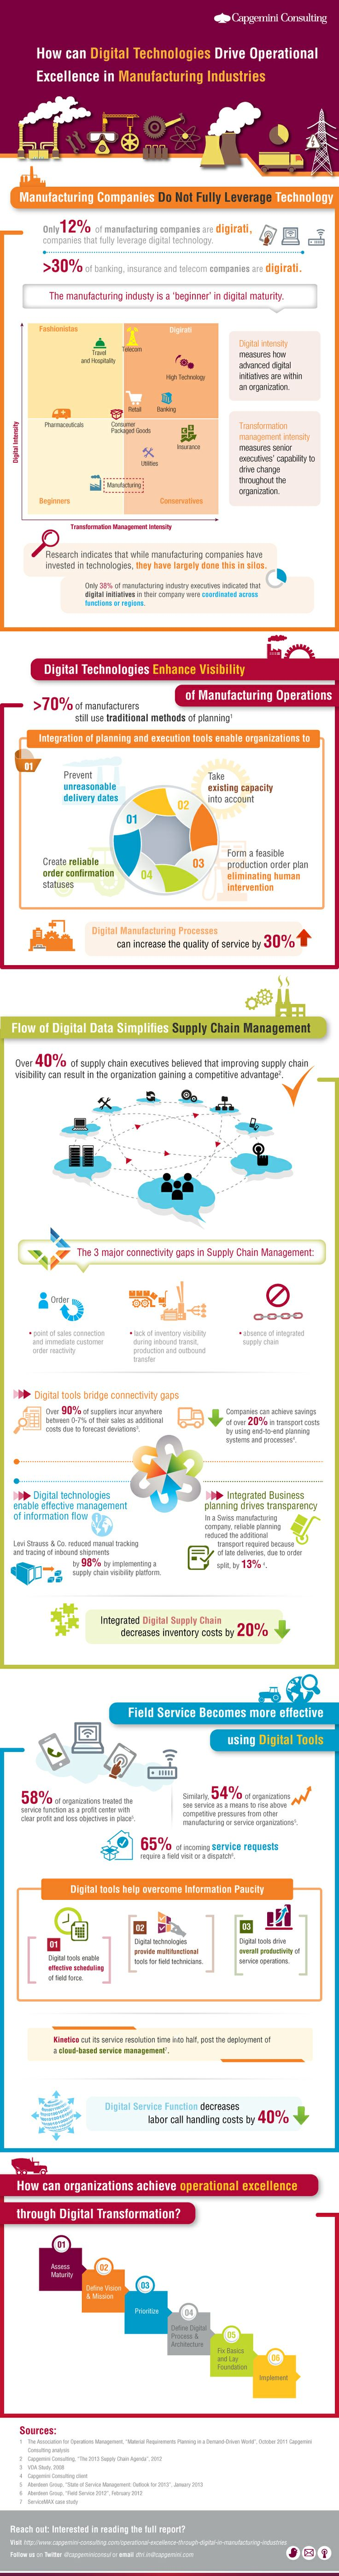 Operational Excellence through Digital in Manufacturing Industries | Capgemini Consulting Worldwide